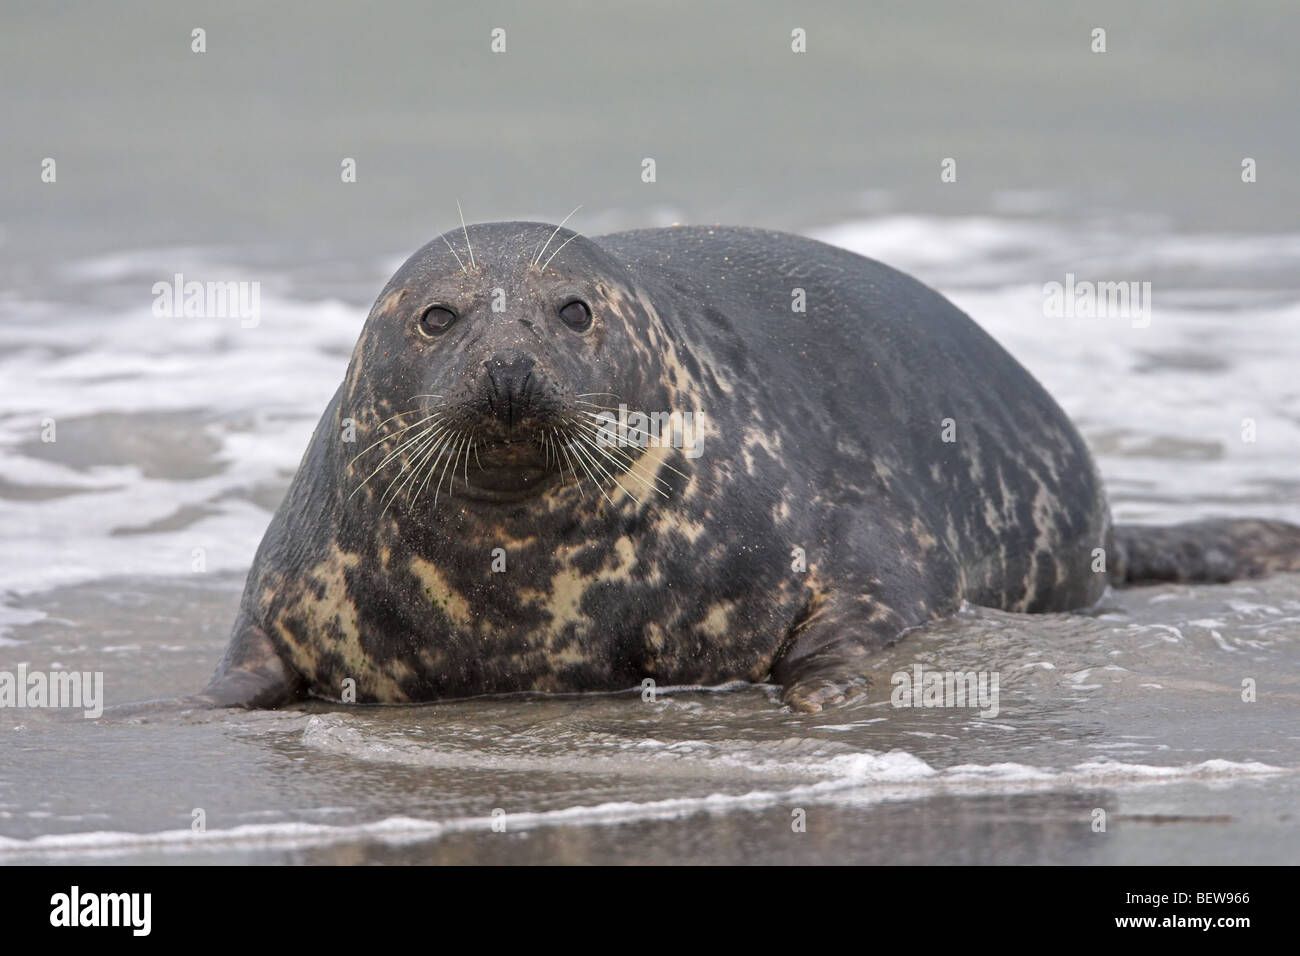 gray seal, grey seal, Halichoerus grypus, full shot Stock Photo